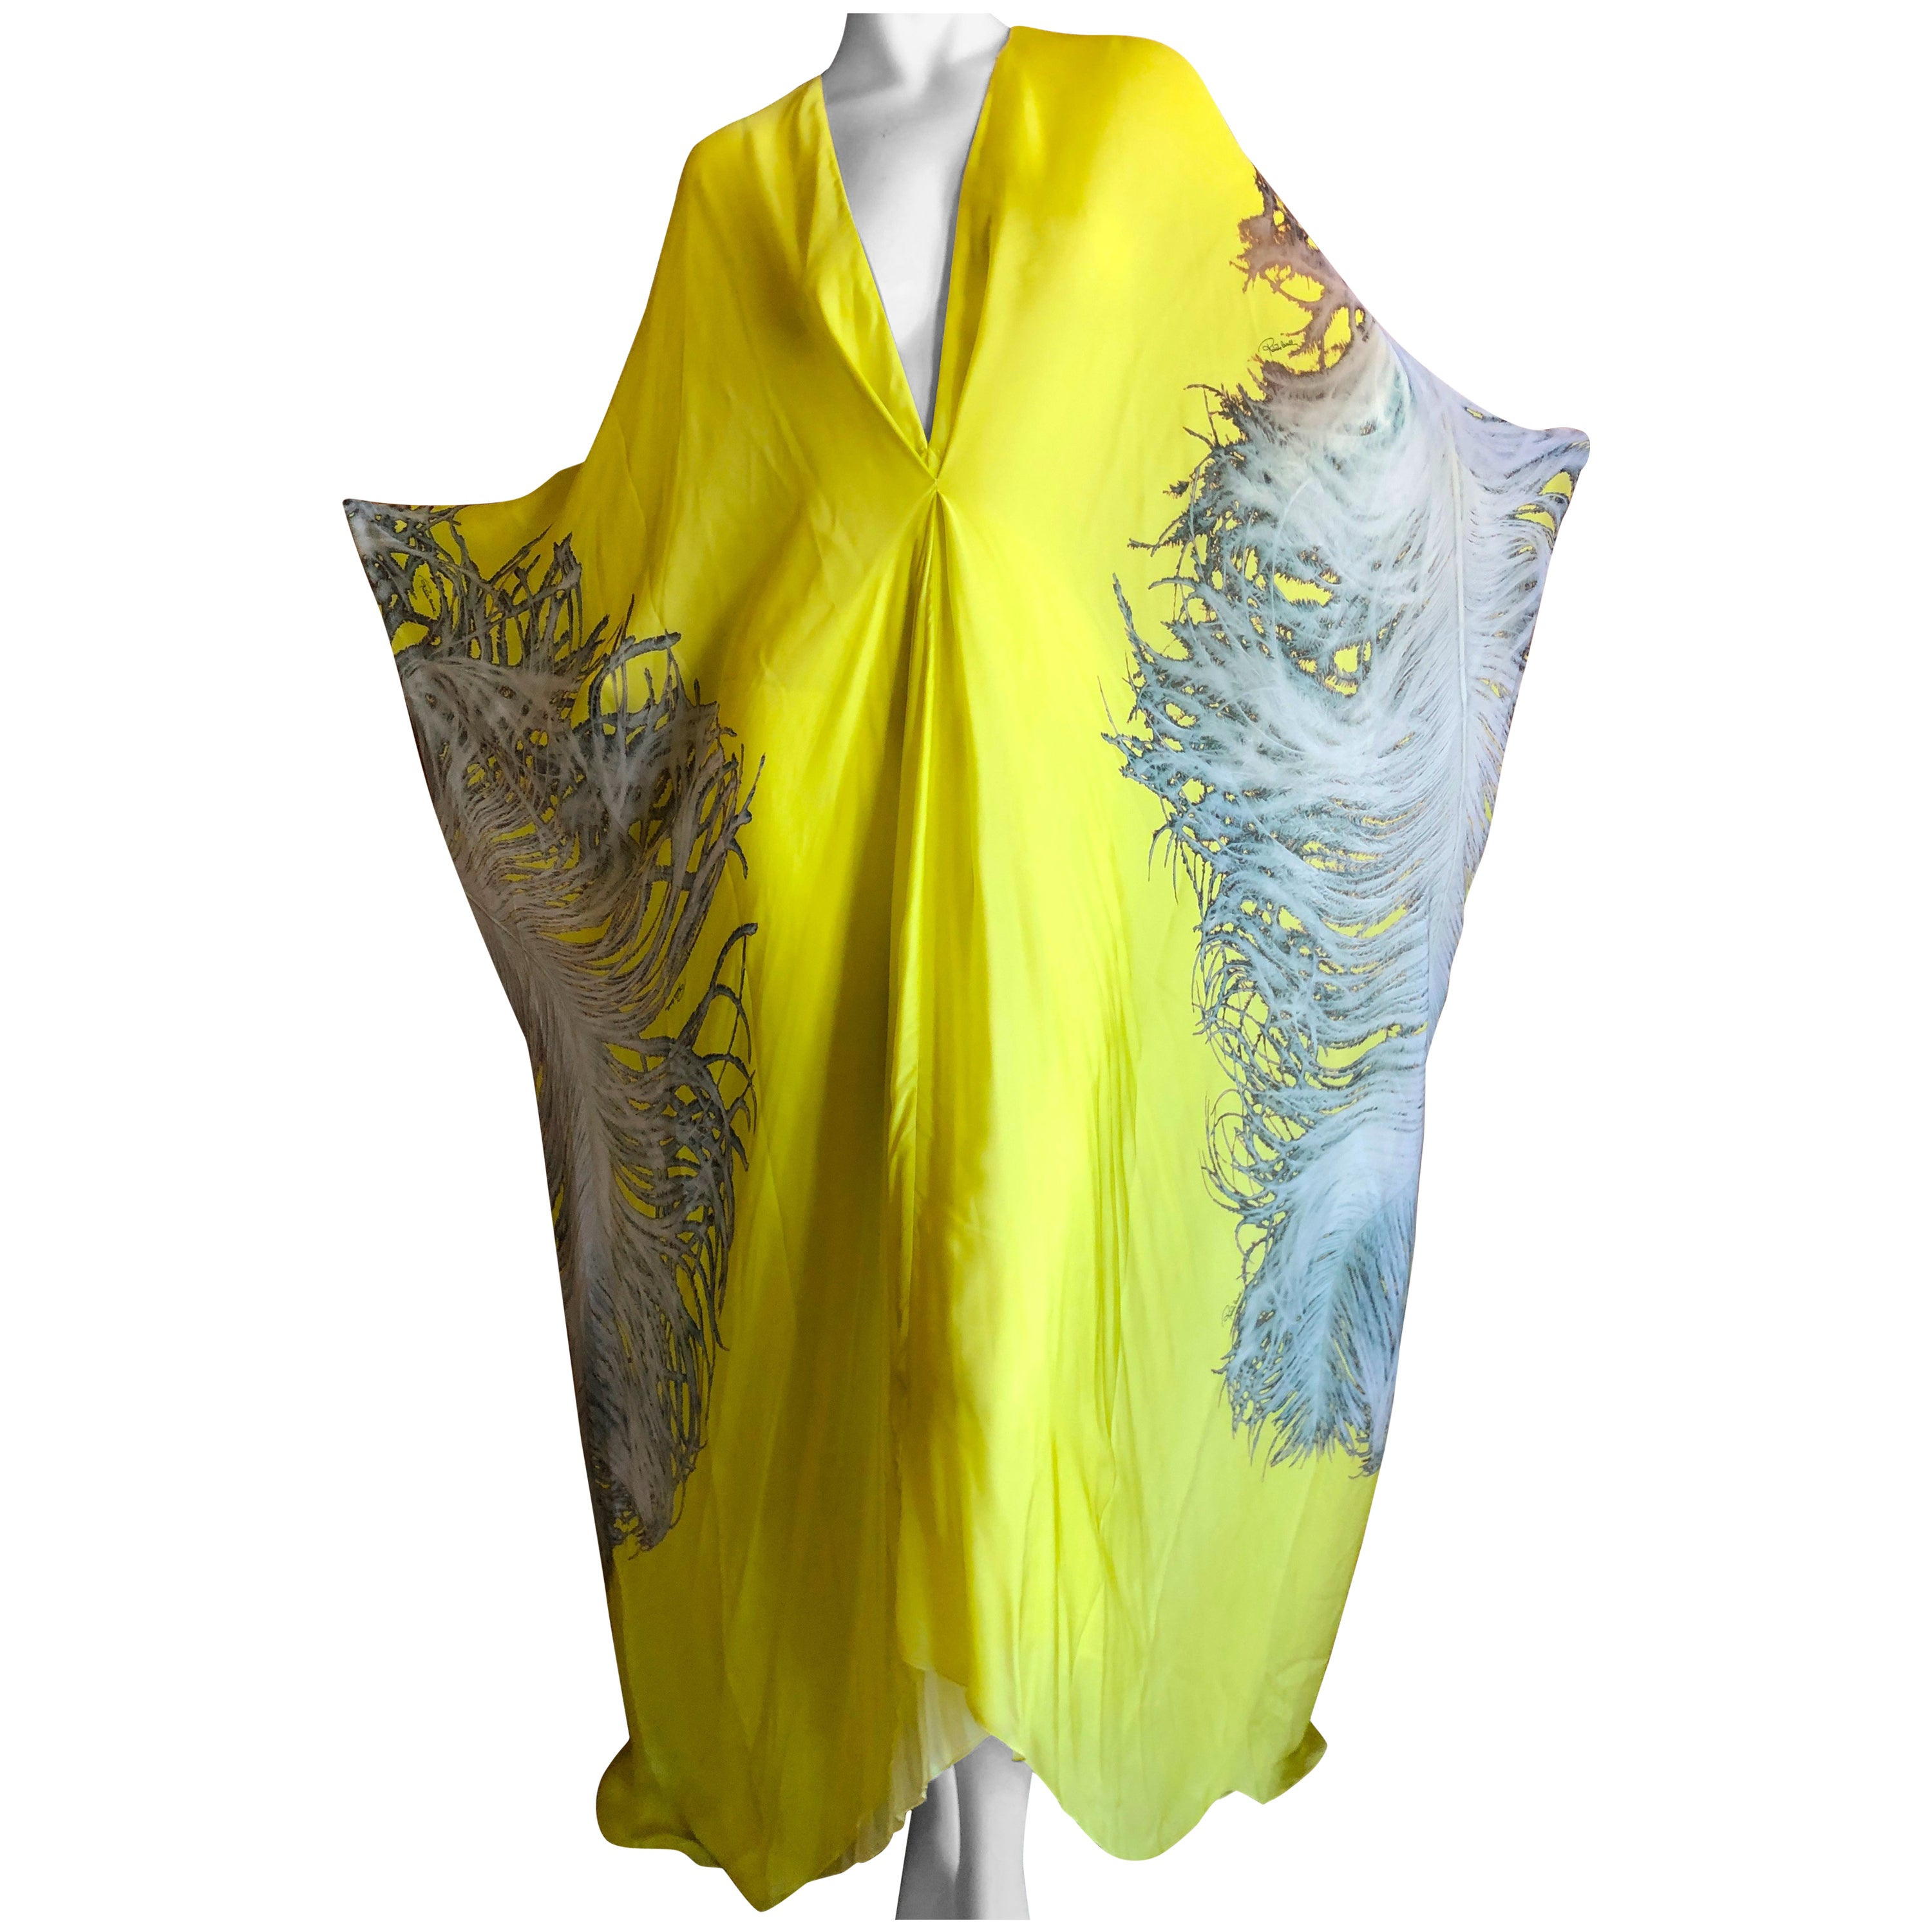 9a84c21f711e Roberto Cavalli Feather Print Yellow Silk Caftan Dress New with Tags at  1stdibs